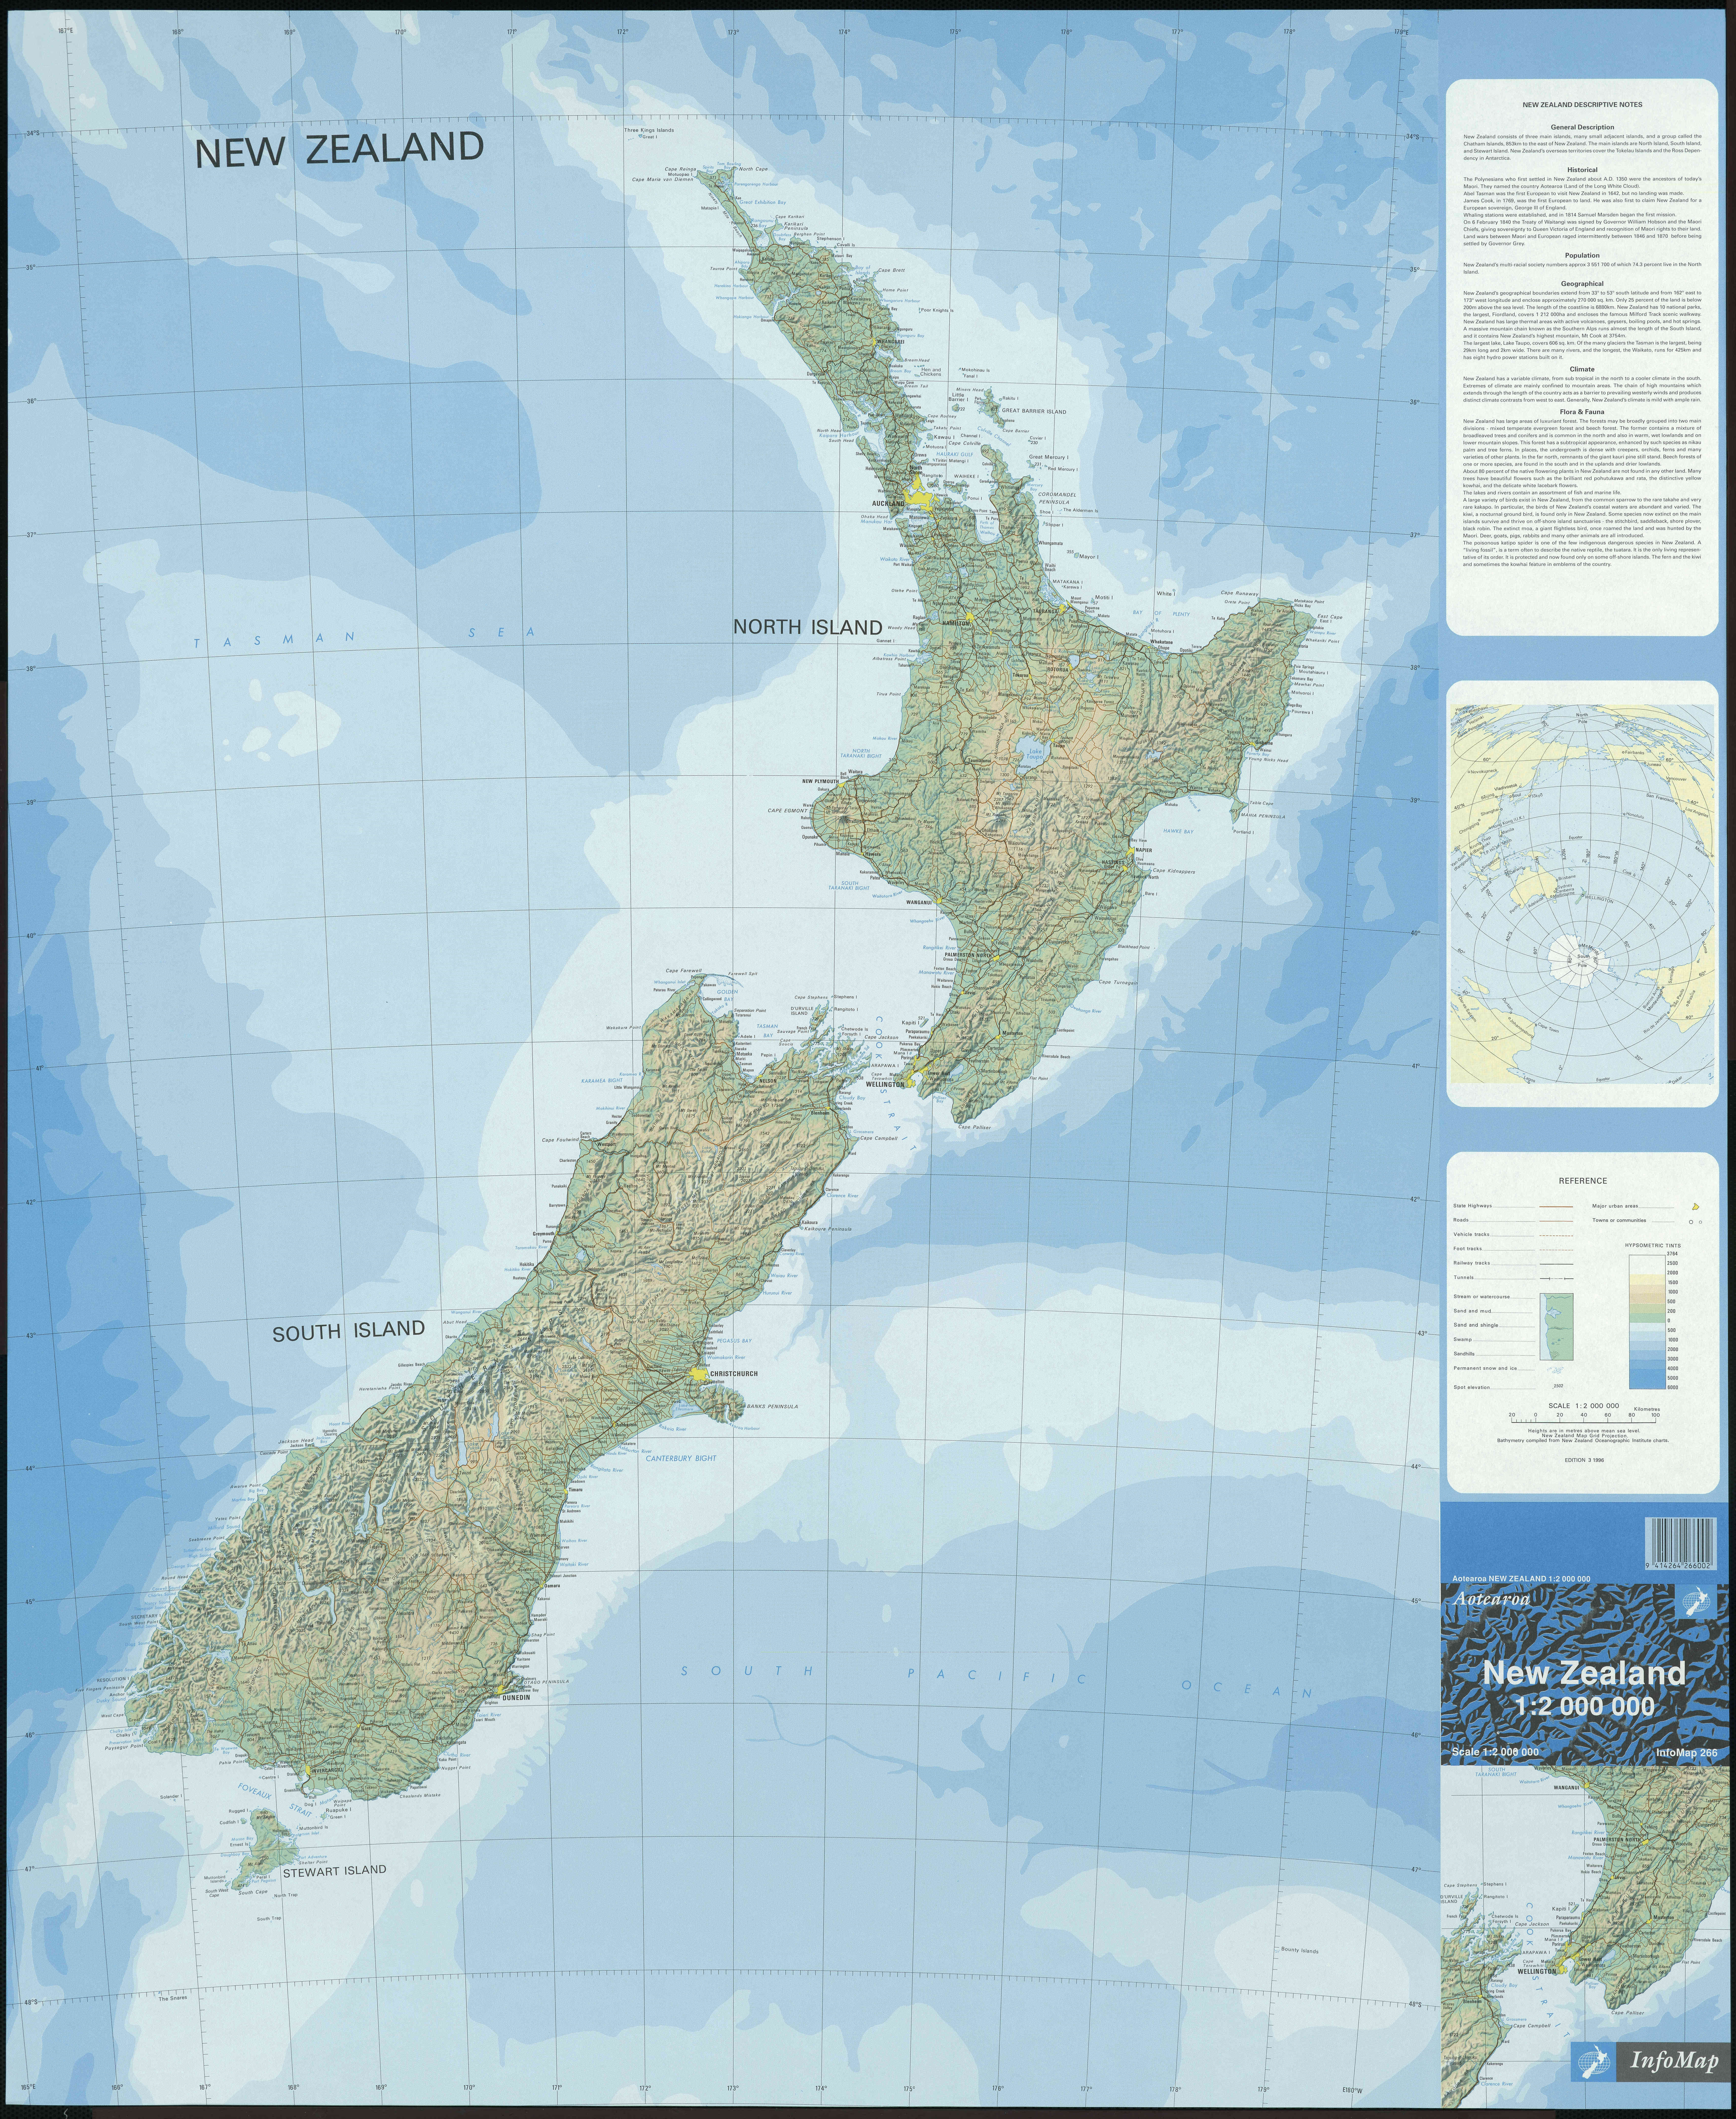 New Zealand Topographic Map.Large Detailed Topographical Map Of New Zealand With All Cities And